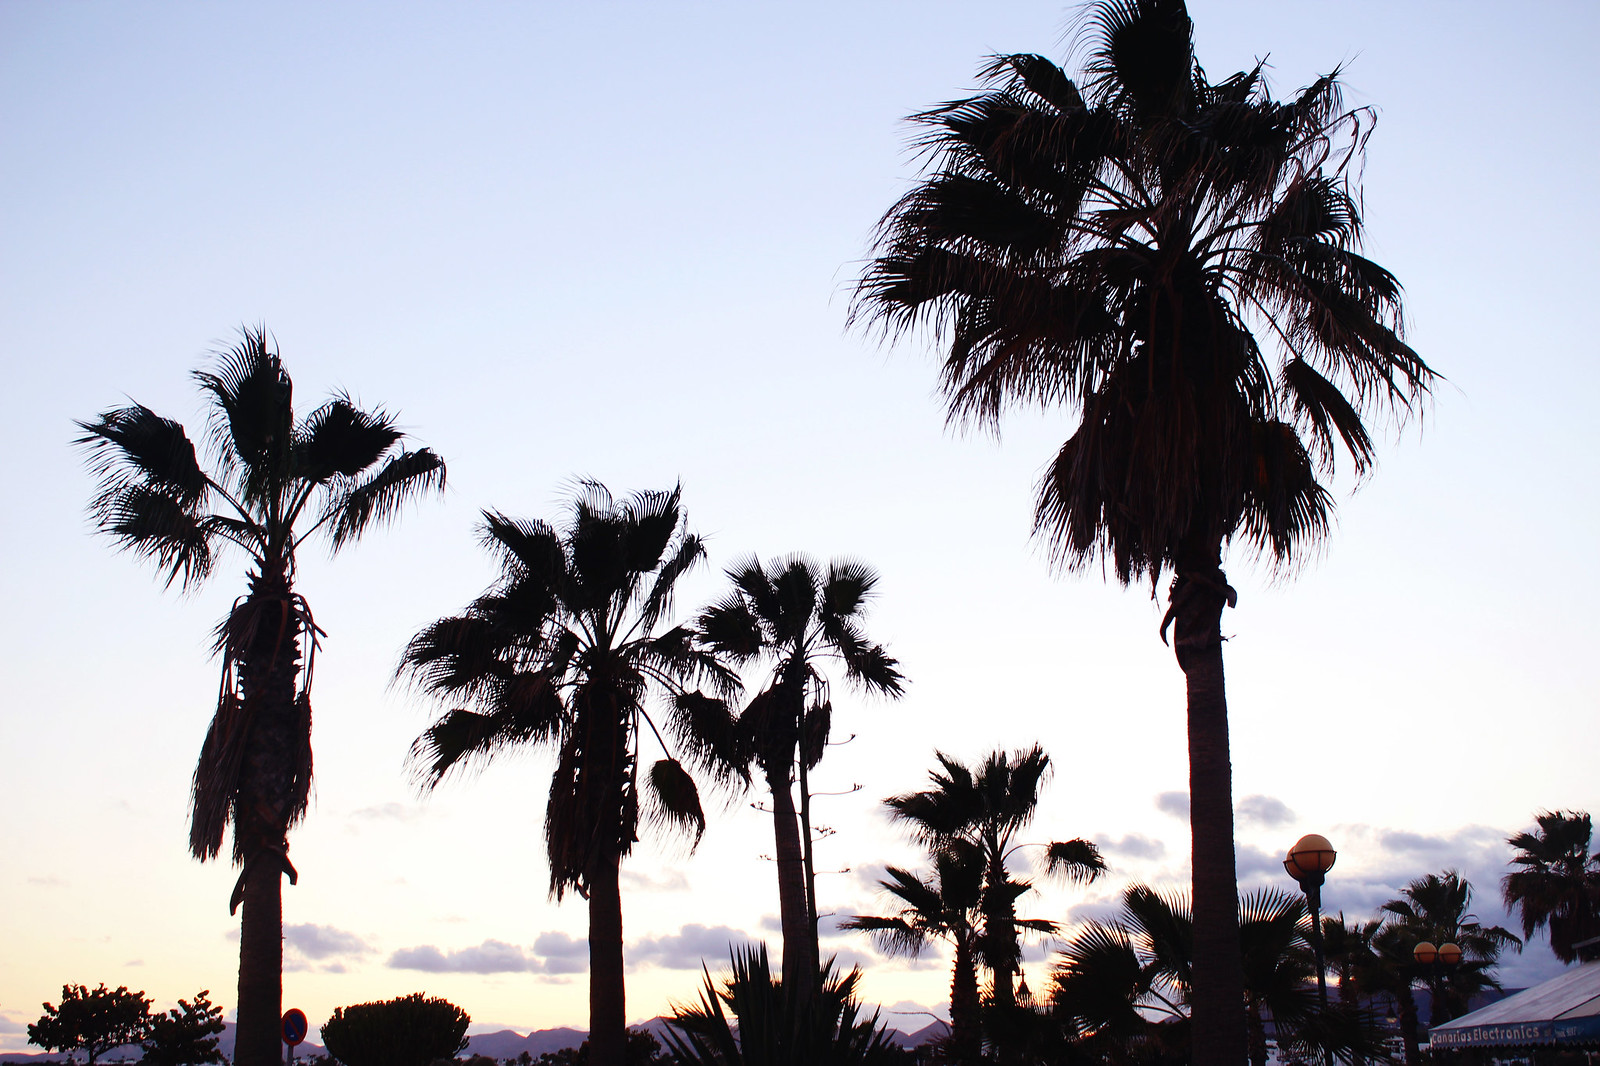 Canary islands palms